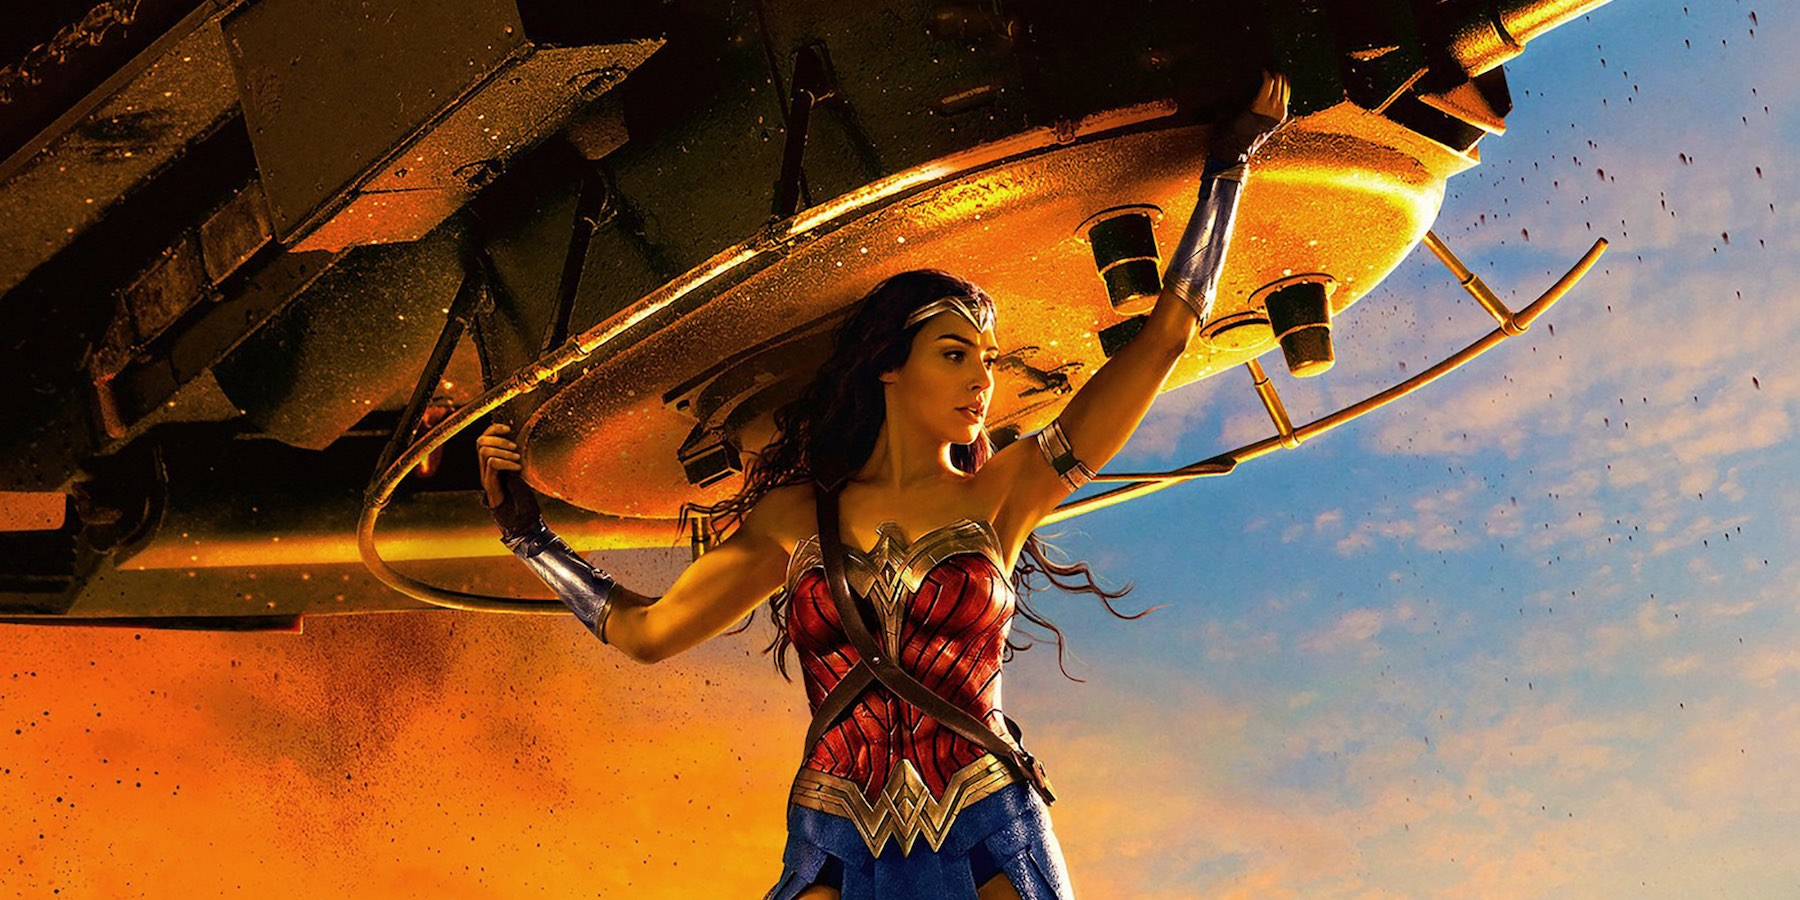 Wonder Woman Tank Poster Cropped